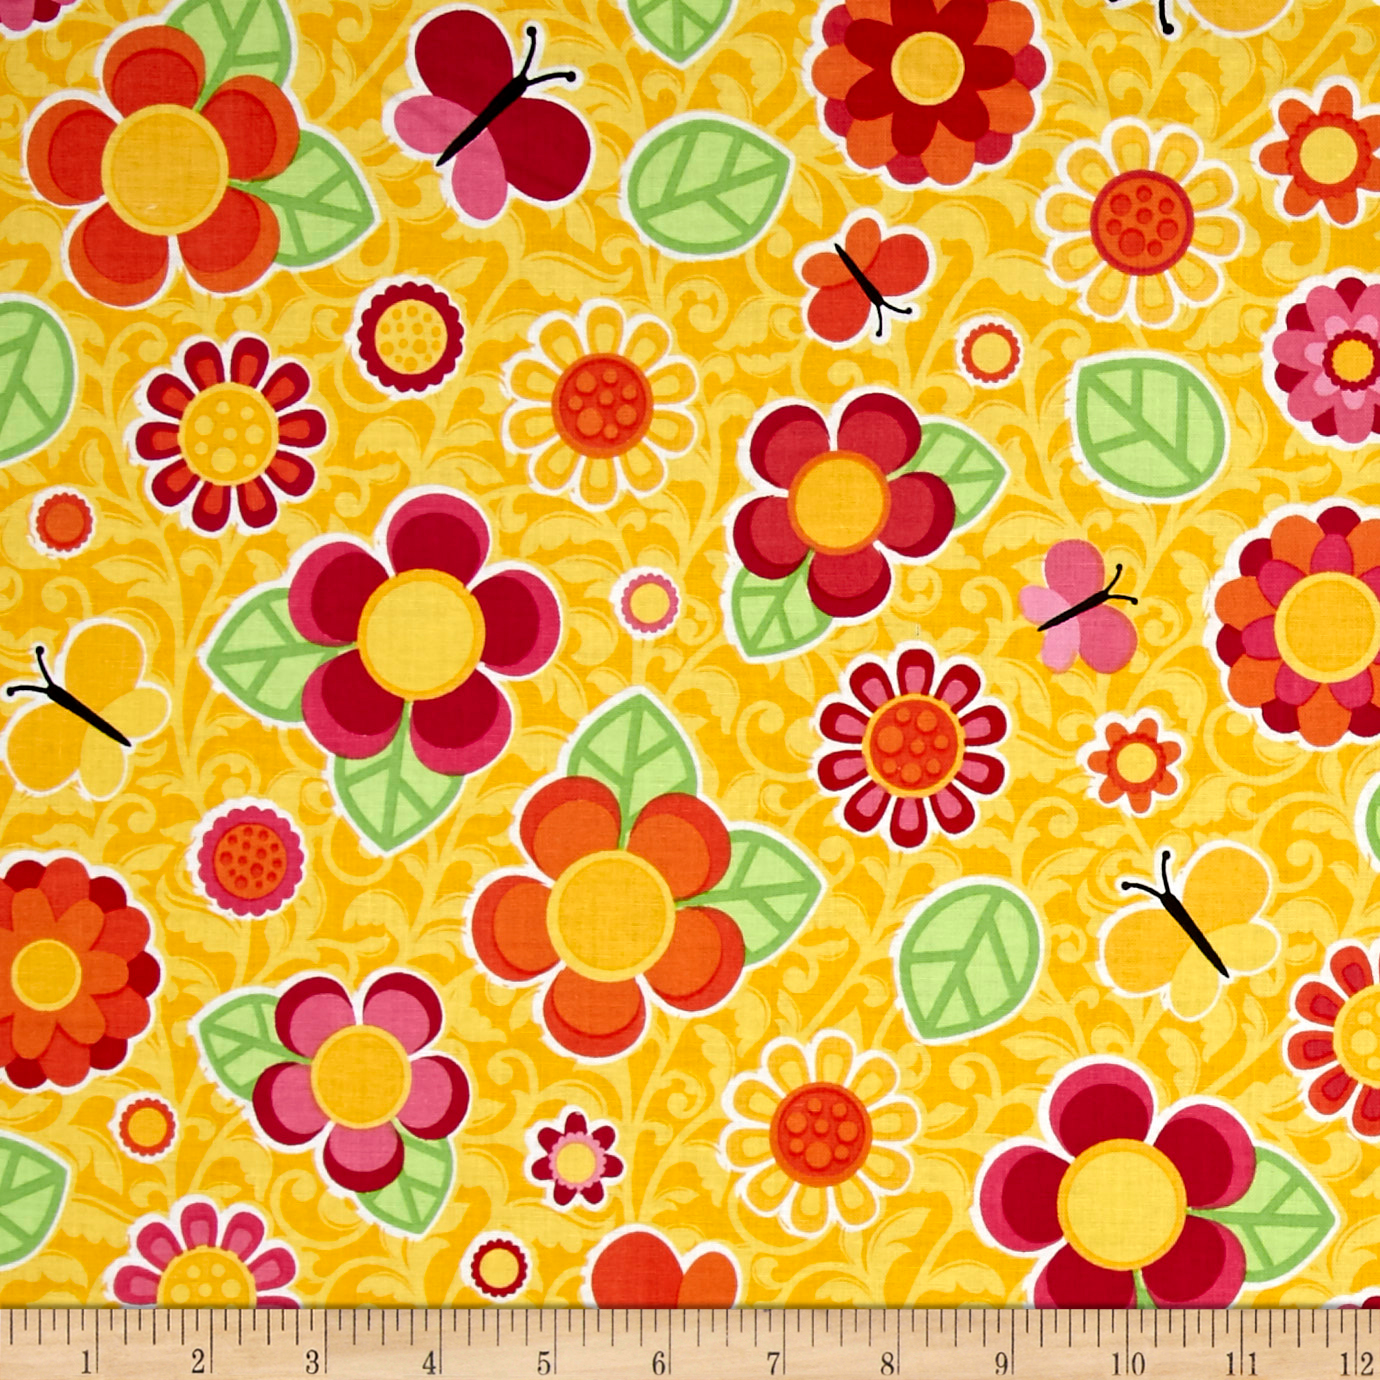 Image of Anna's Garden Tossed Flowers Buttercup Fabric